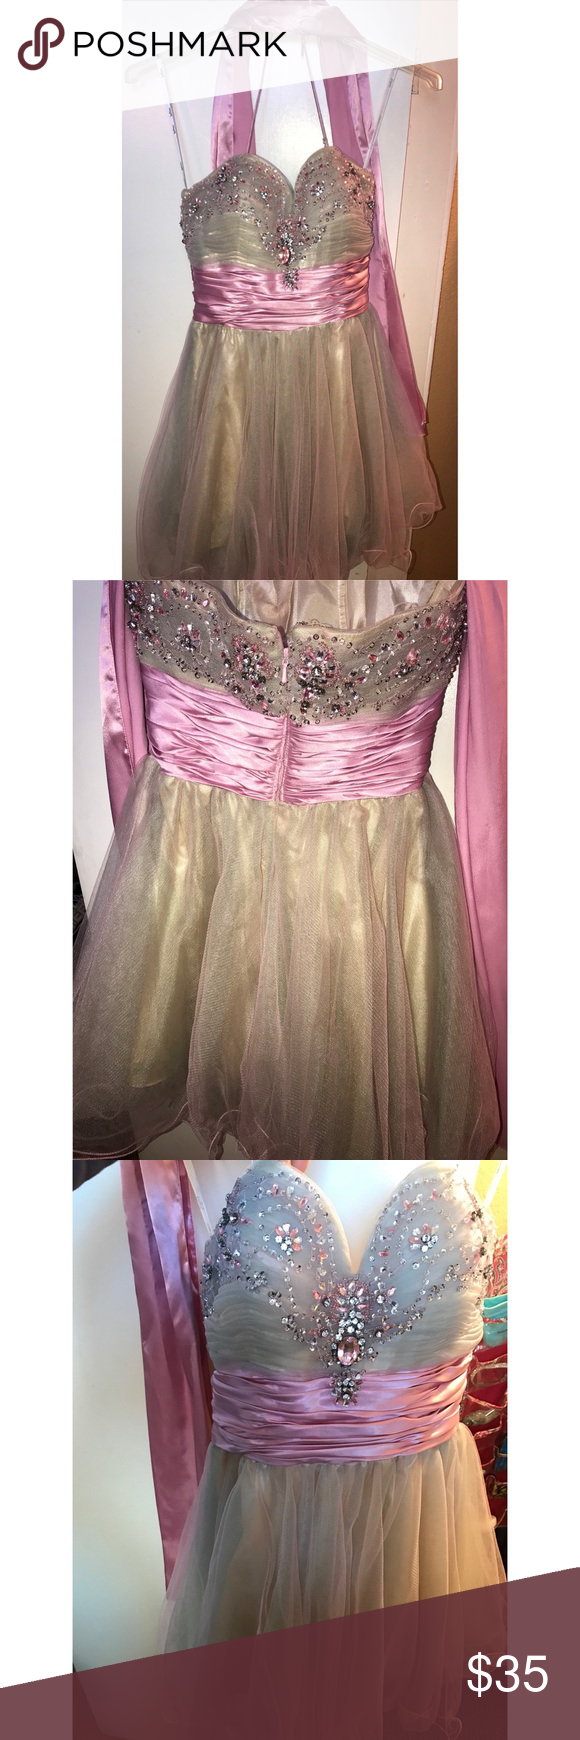 Short pink strapless puffy dress with rimestones in My Posh